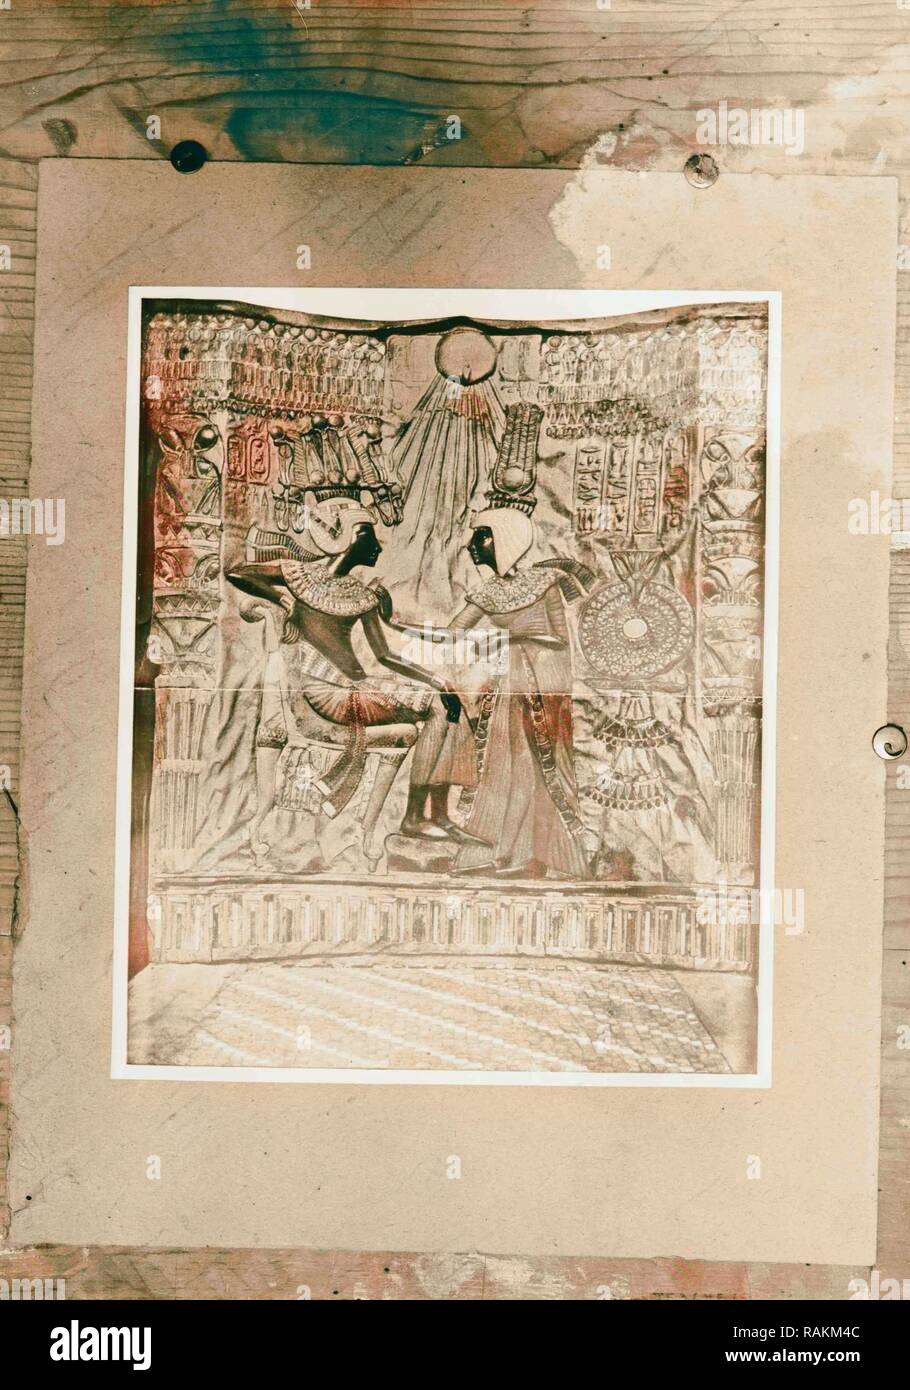 Items from Tutankhamen's tomb. Copies. 1922, Egypt. Reimagined by Gibon. Classic art with a modern twist reimagined - Stock Image